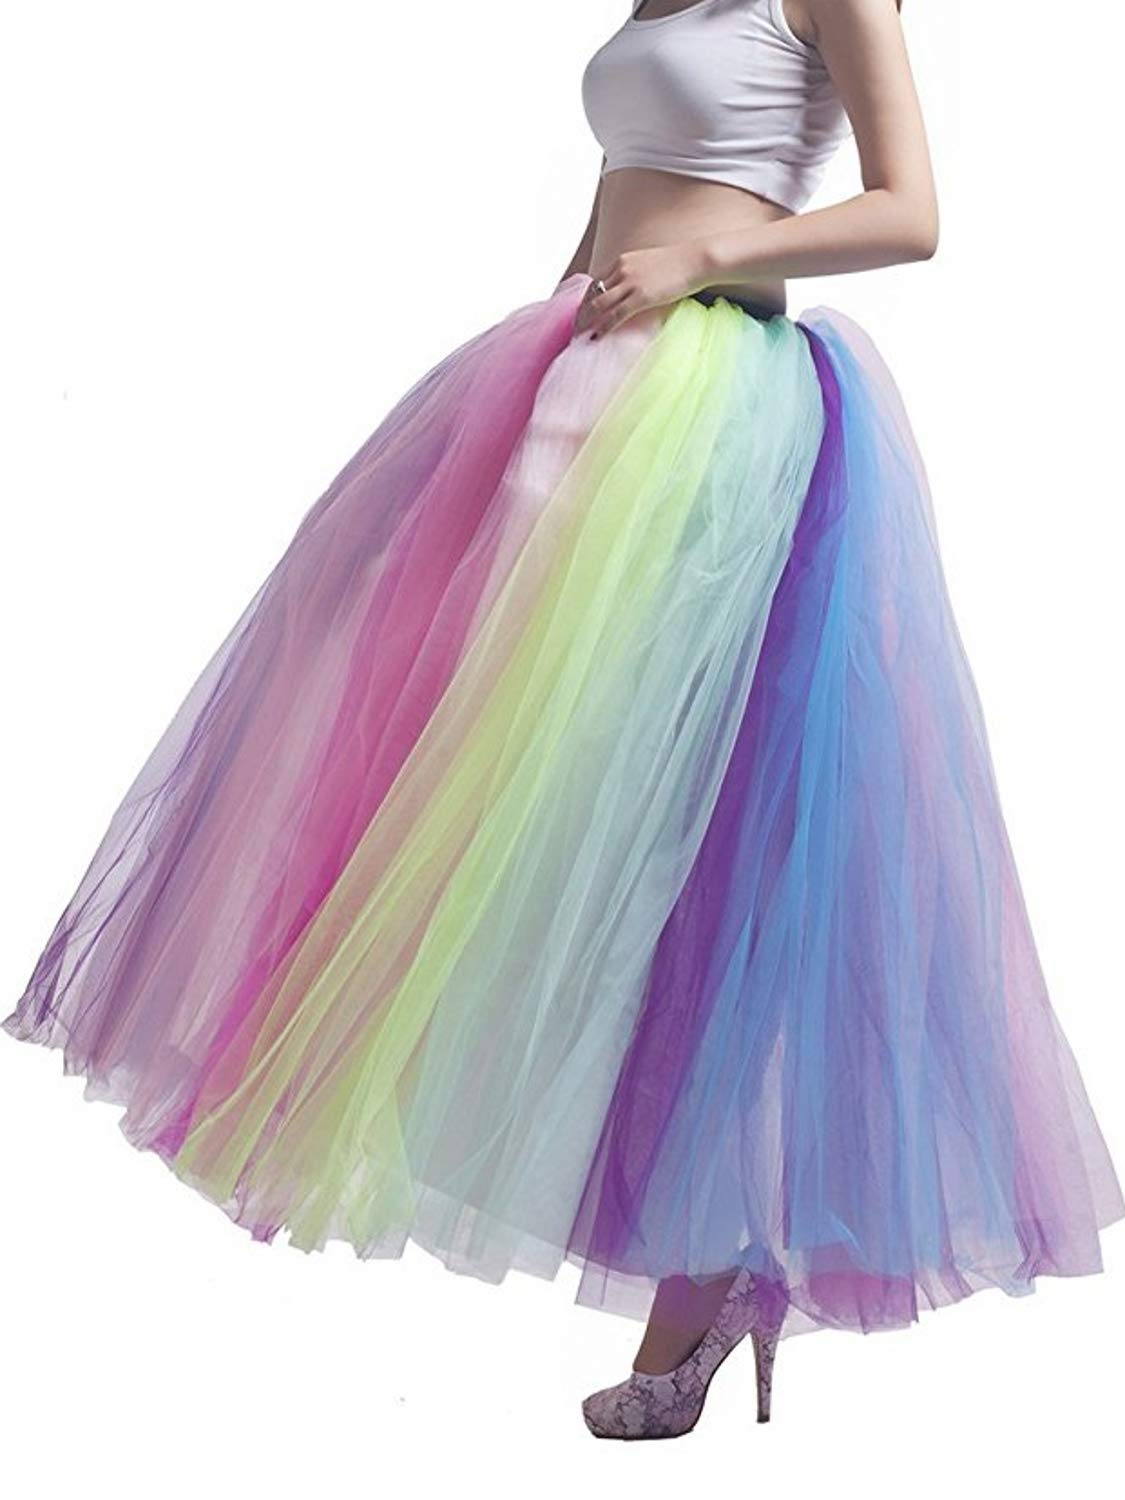 MisShow Women's Elastic Waist Ballet Layered Floor Length Tutu Tulle Prom Party Skirt